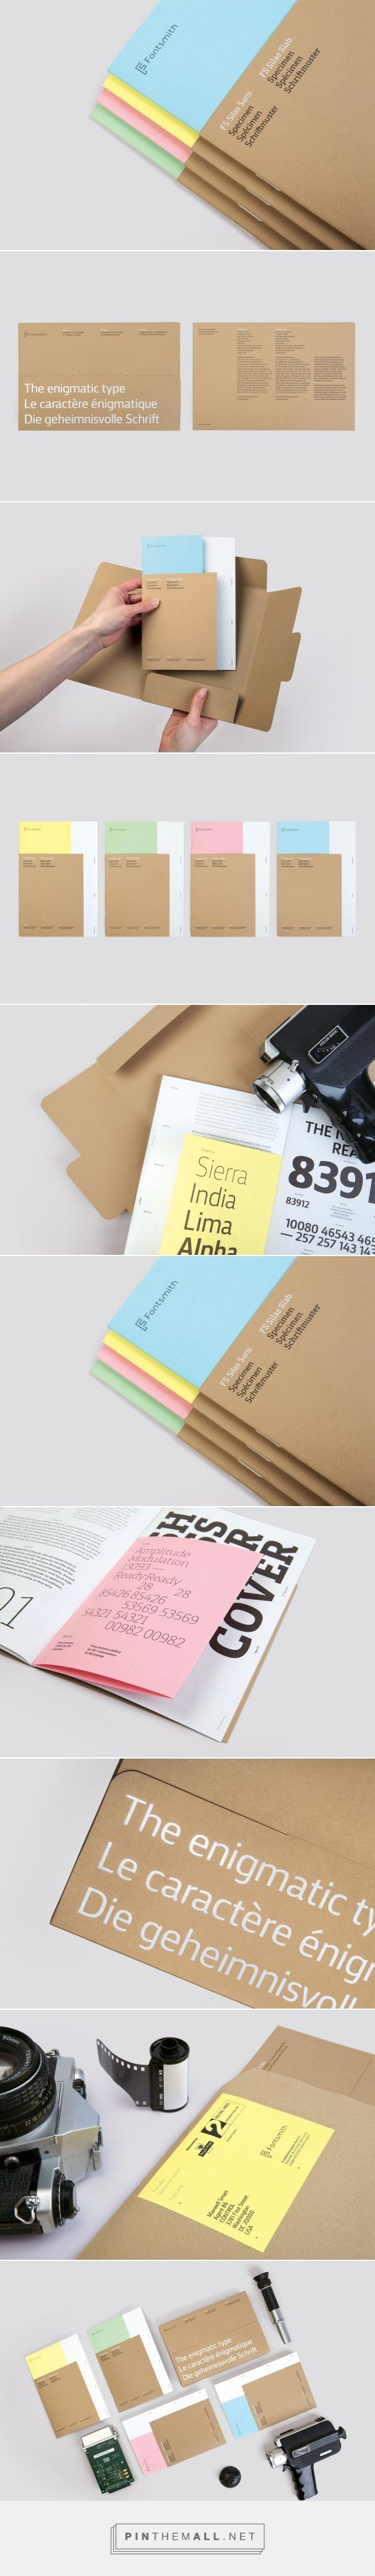 FS Silas Launch Campaign by Believe In — BP&O - created via http://pinthemall.net